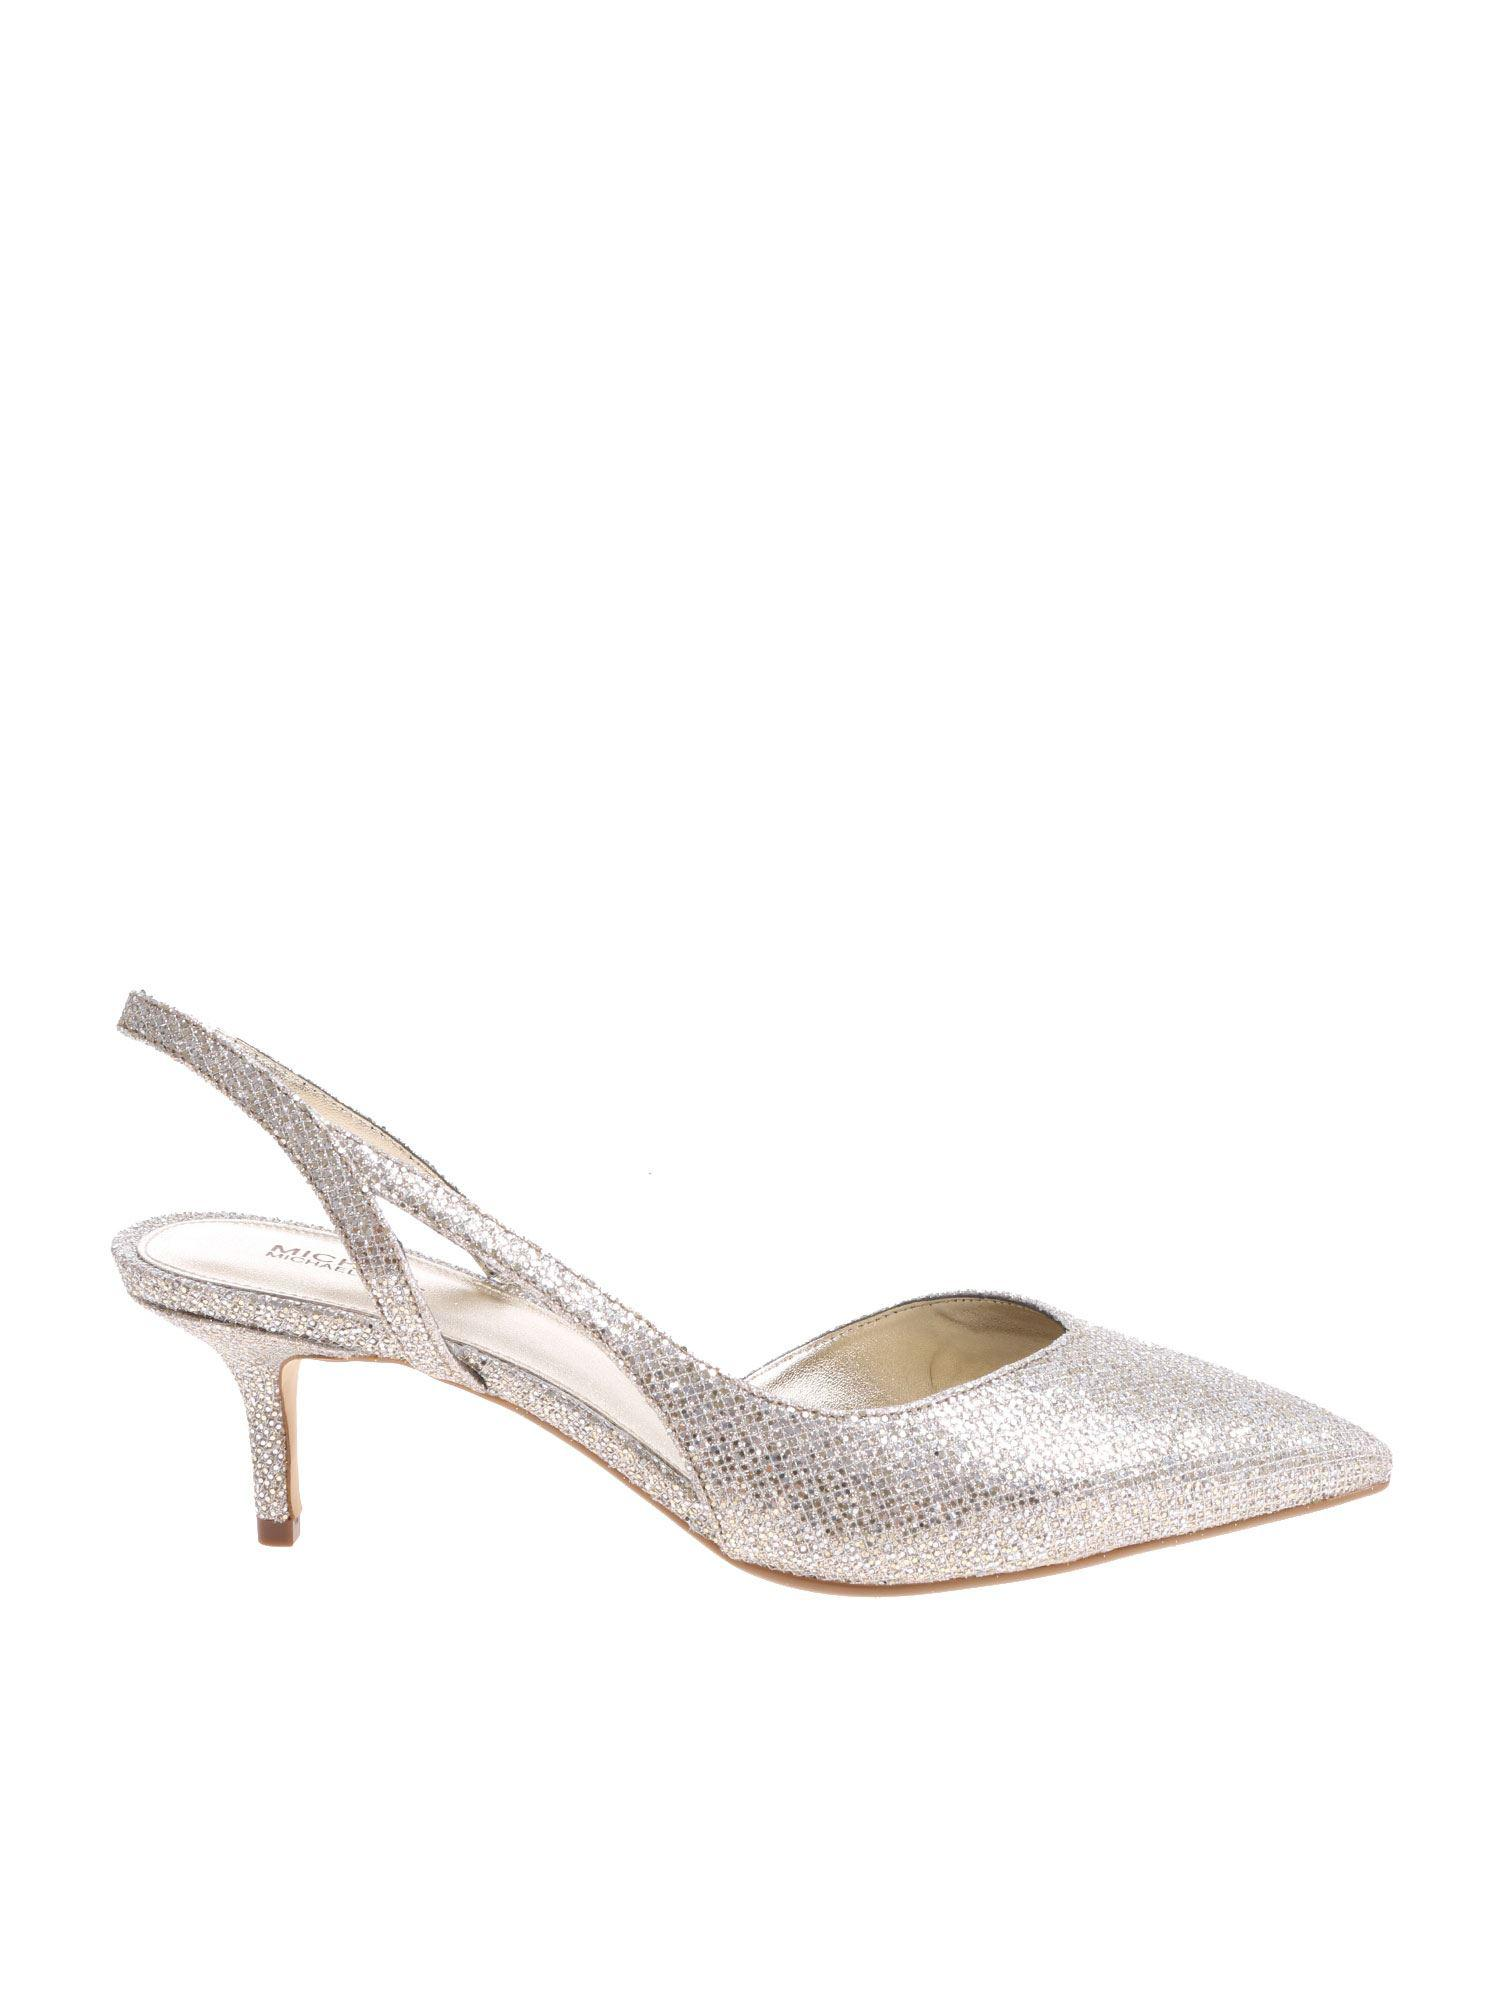 e7857a7314f3 Michael Kors Silver Eliza Flex Kitten Pumps in Metallic - Lyst